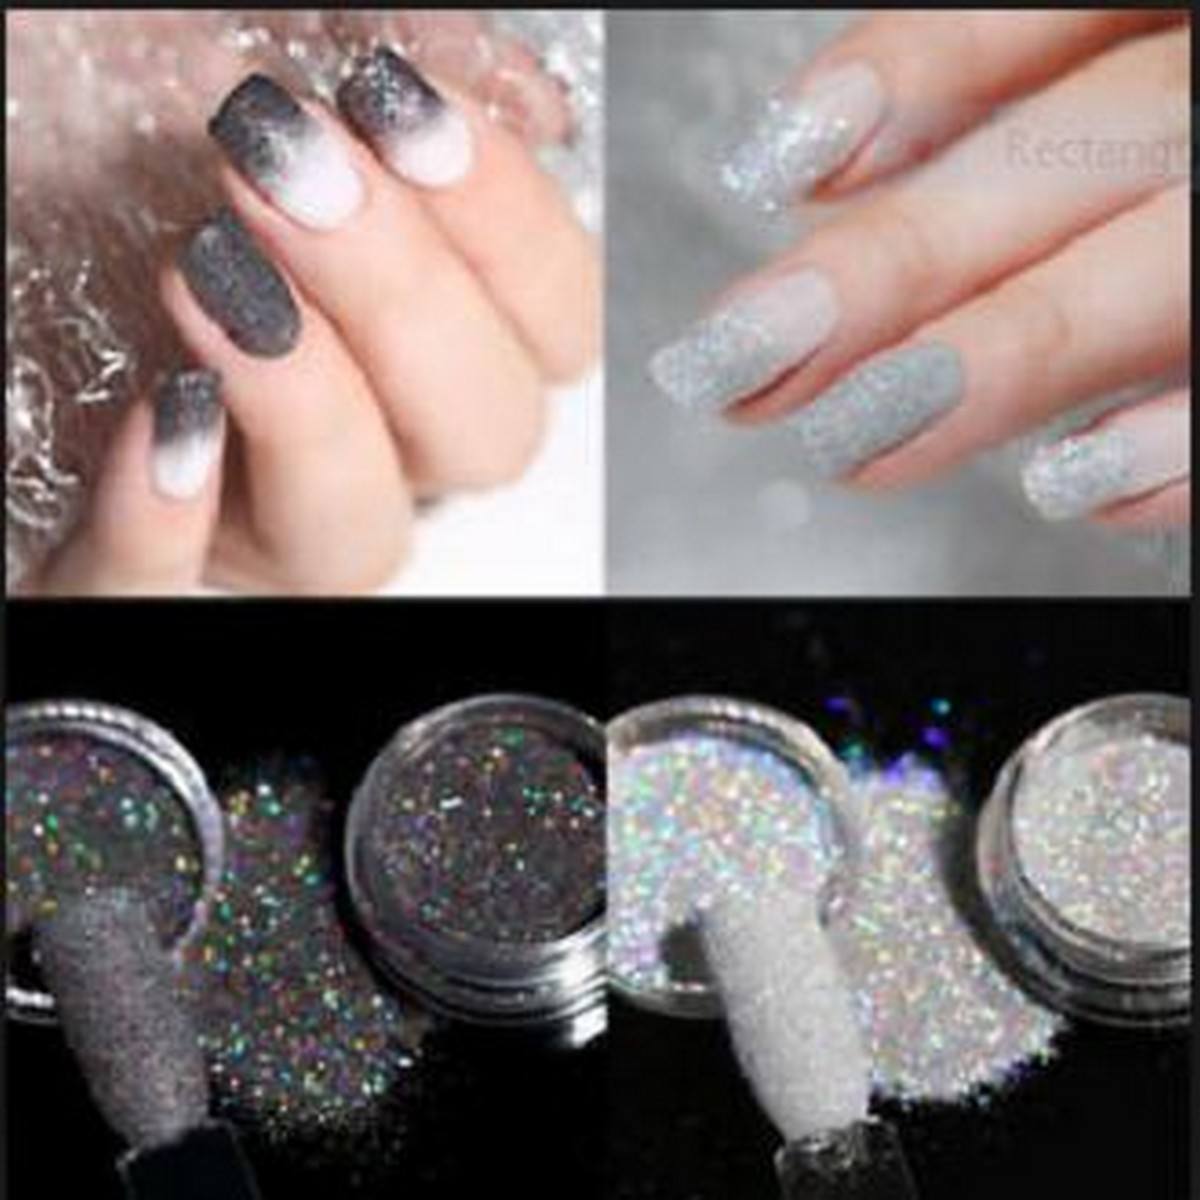 2 Boxes Holographic Glitter Powder Dust Nail Art white Gray and Holo Laser Manicure white and silver